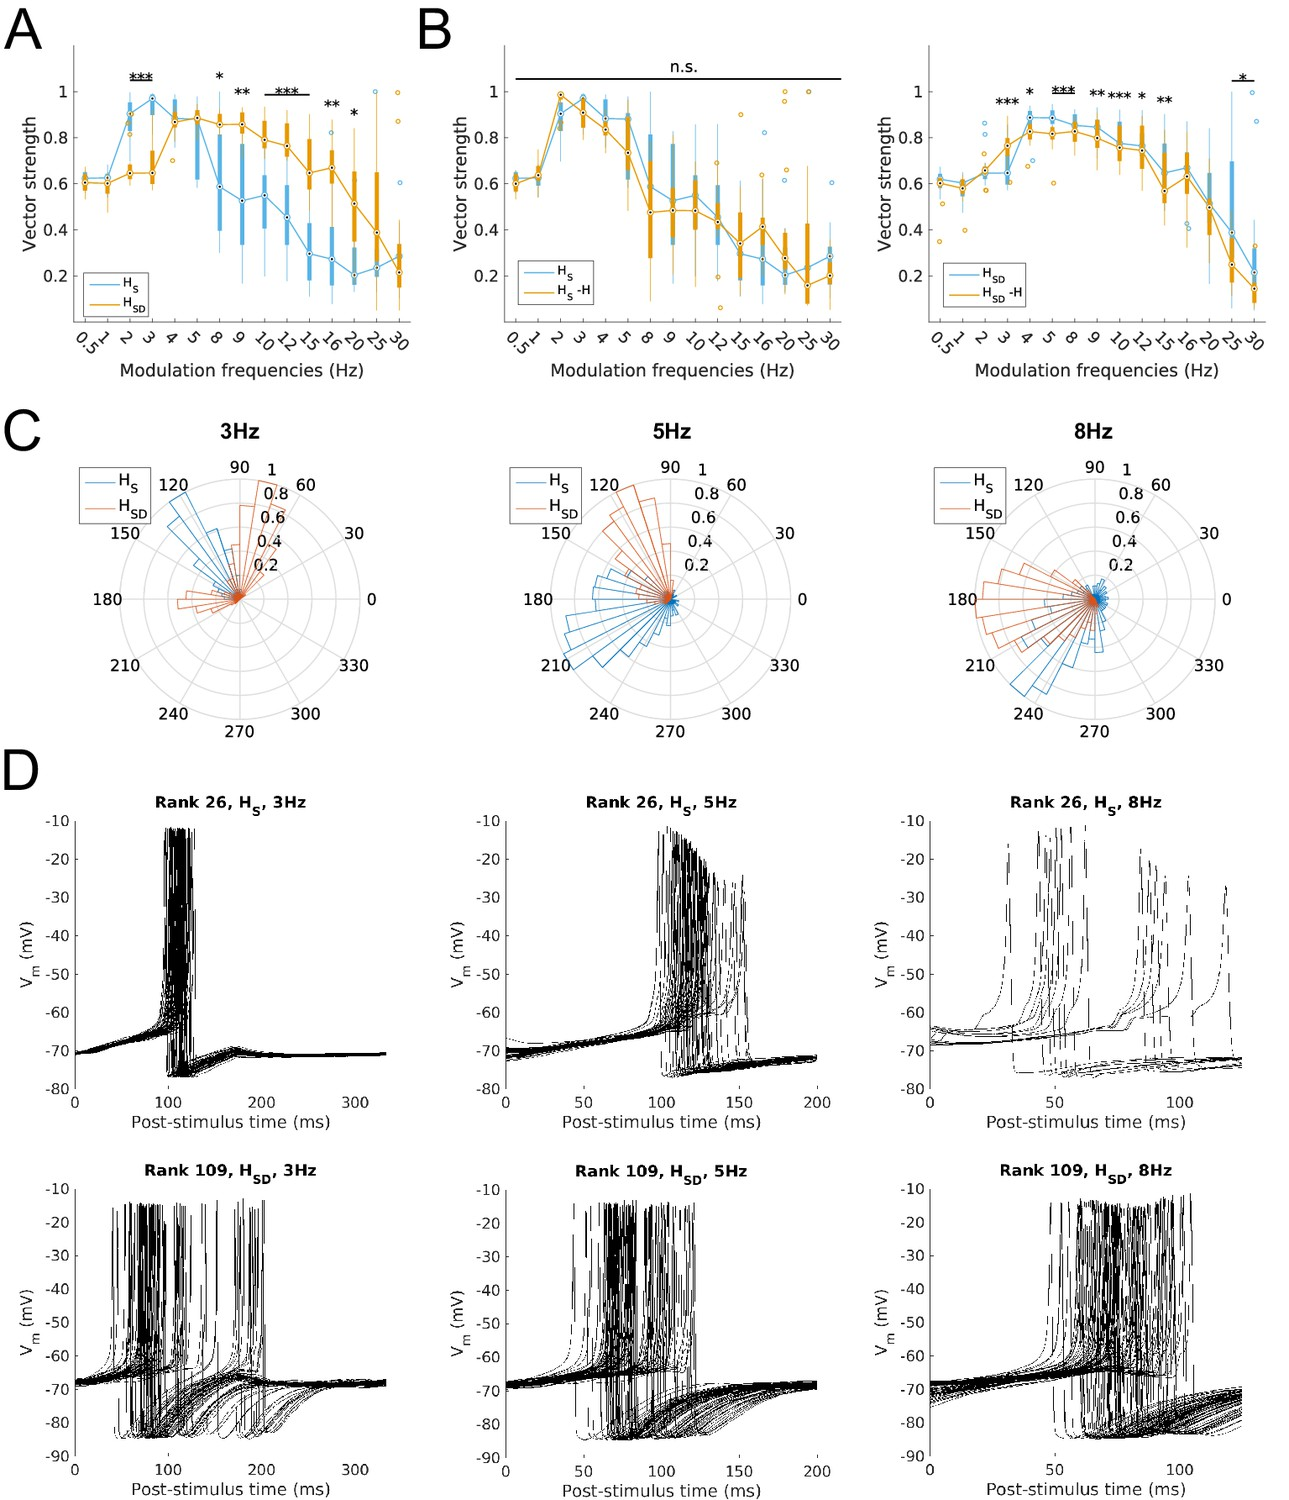 Computational Models Of O Lm Cells Are Recruited By Low Or High Bunn Hg Wiring Diagram Firing Precision And Phase With Modulated Somatodendritic Inputs